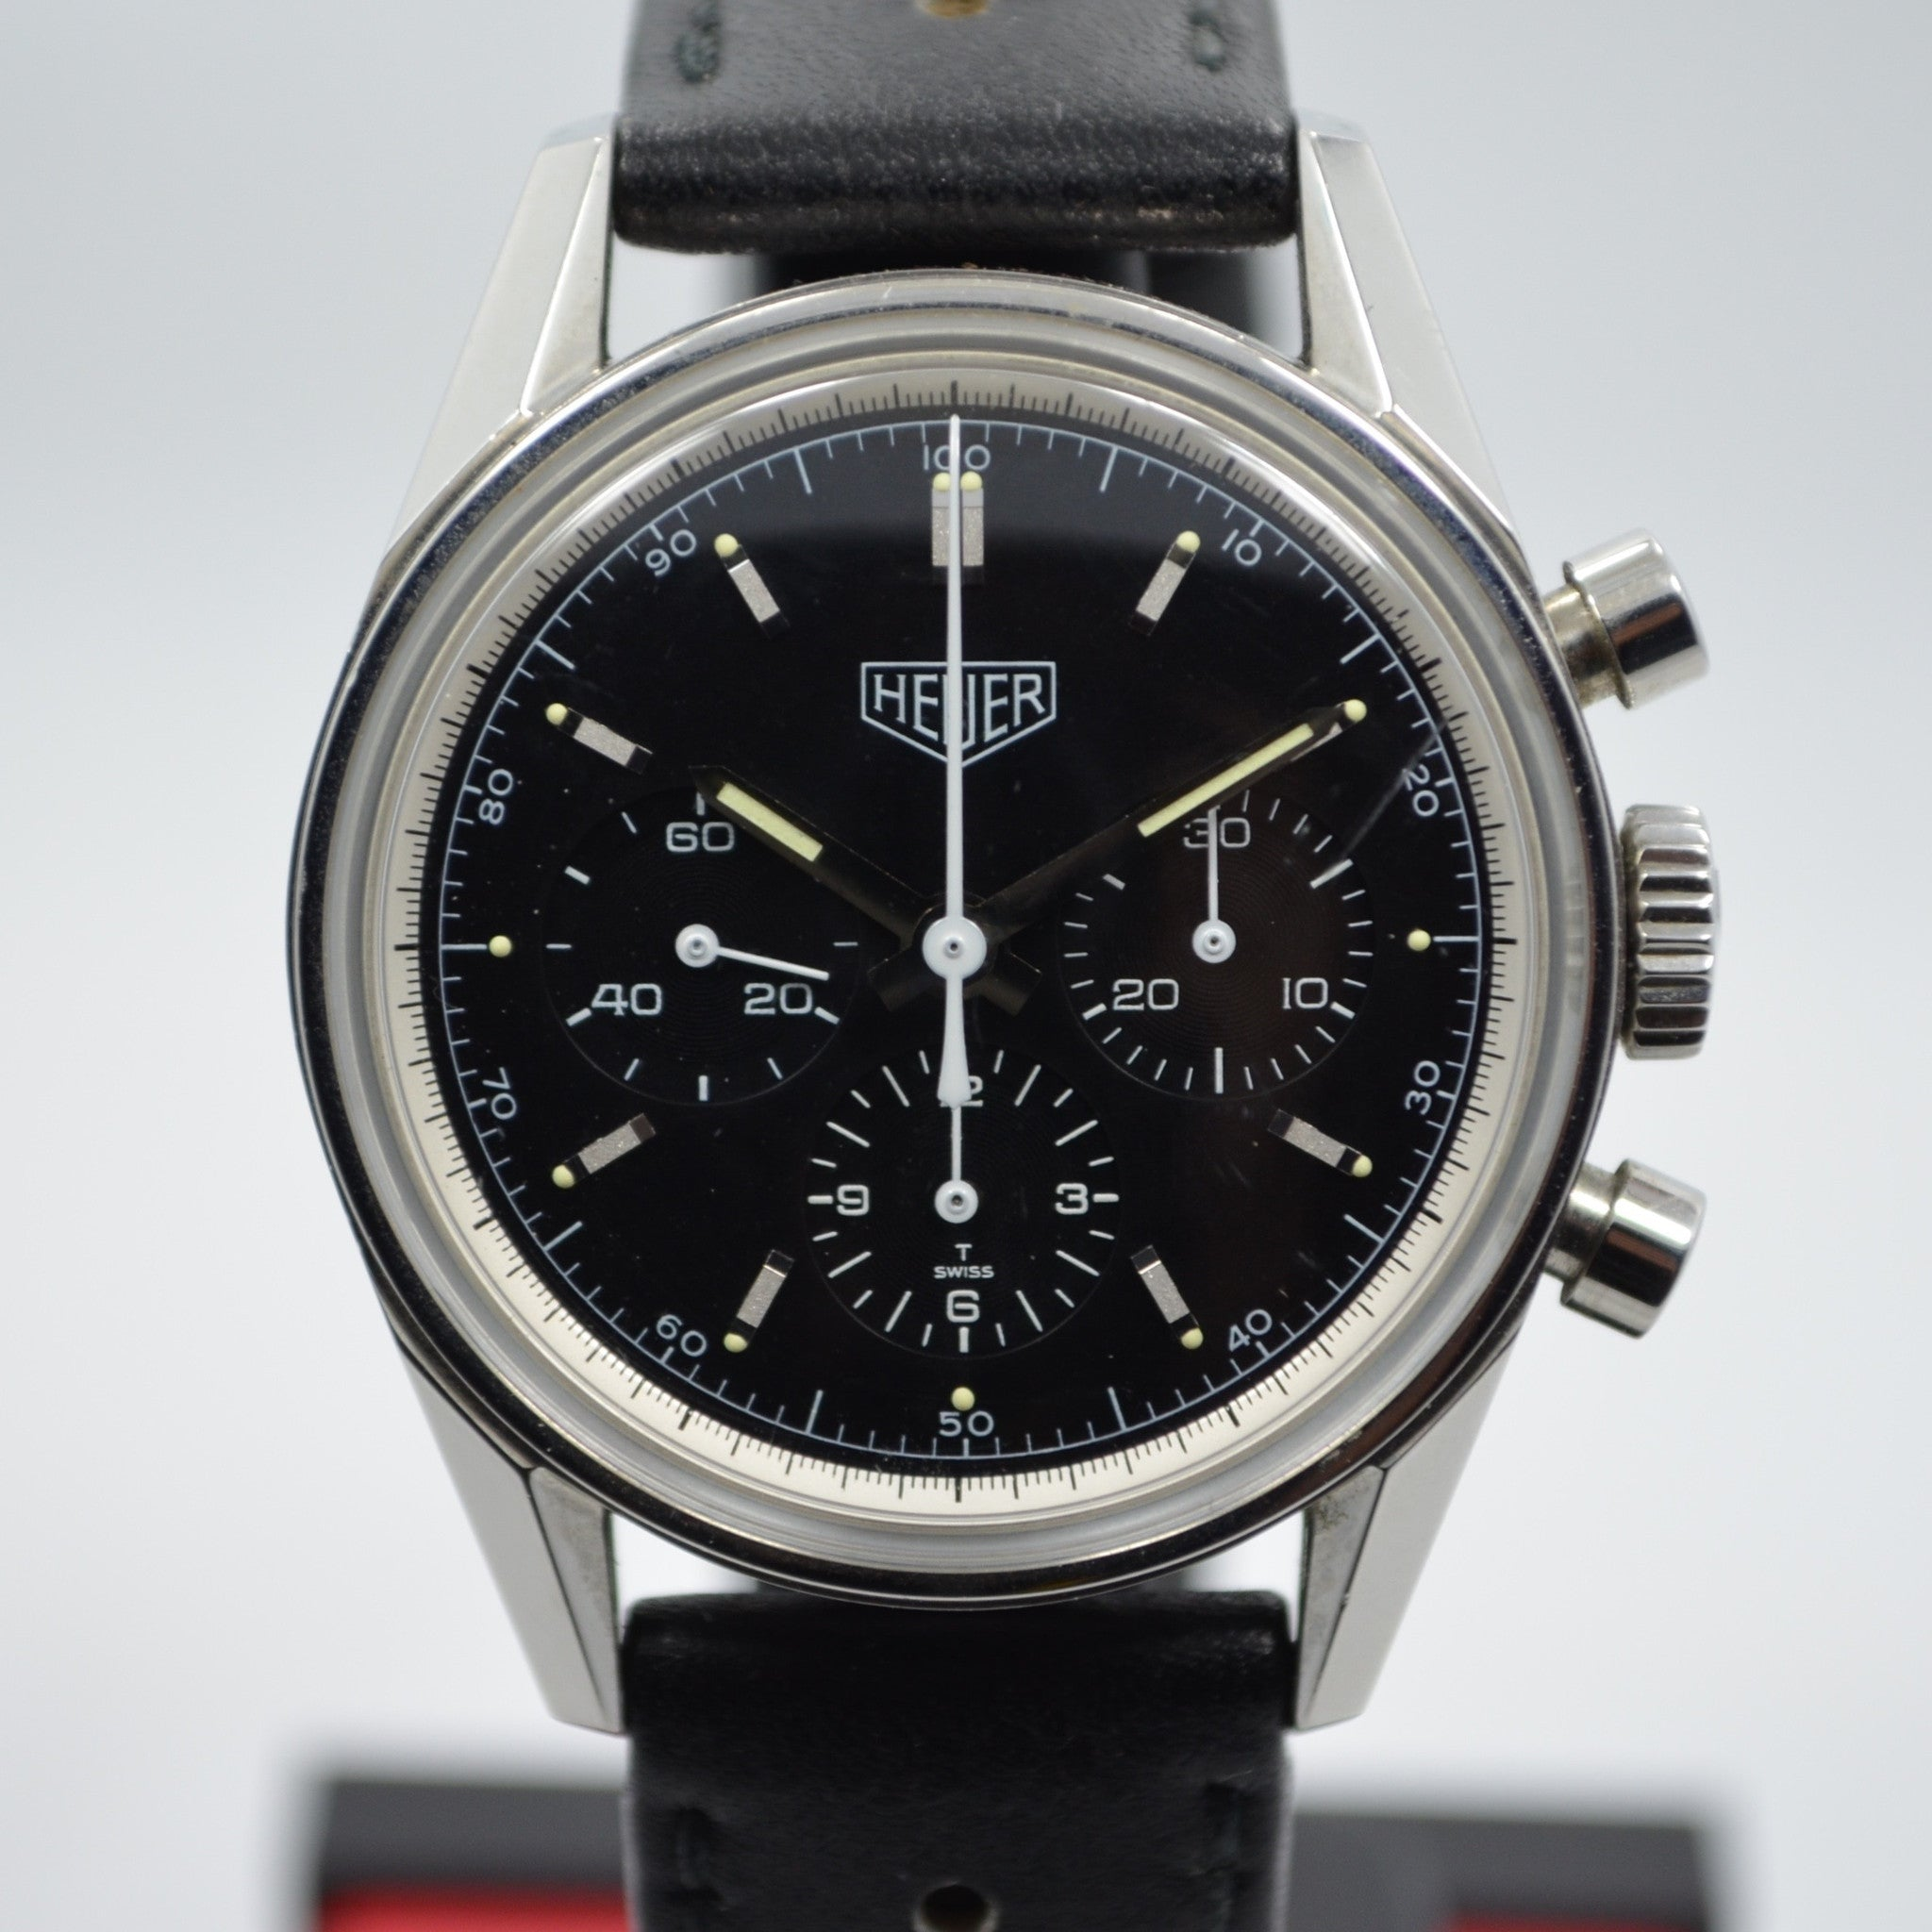 Tag Heuer CS31111 Heuer Carrera Steel Chronograph 1964 Re-Edition Wristwatch - Hashtag Watch Company